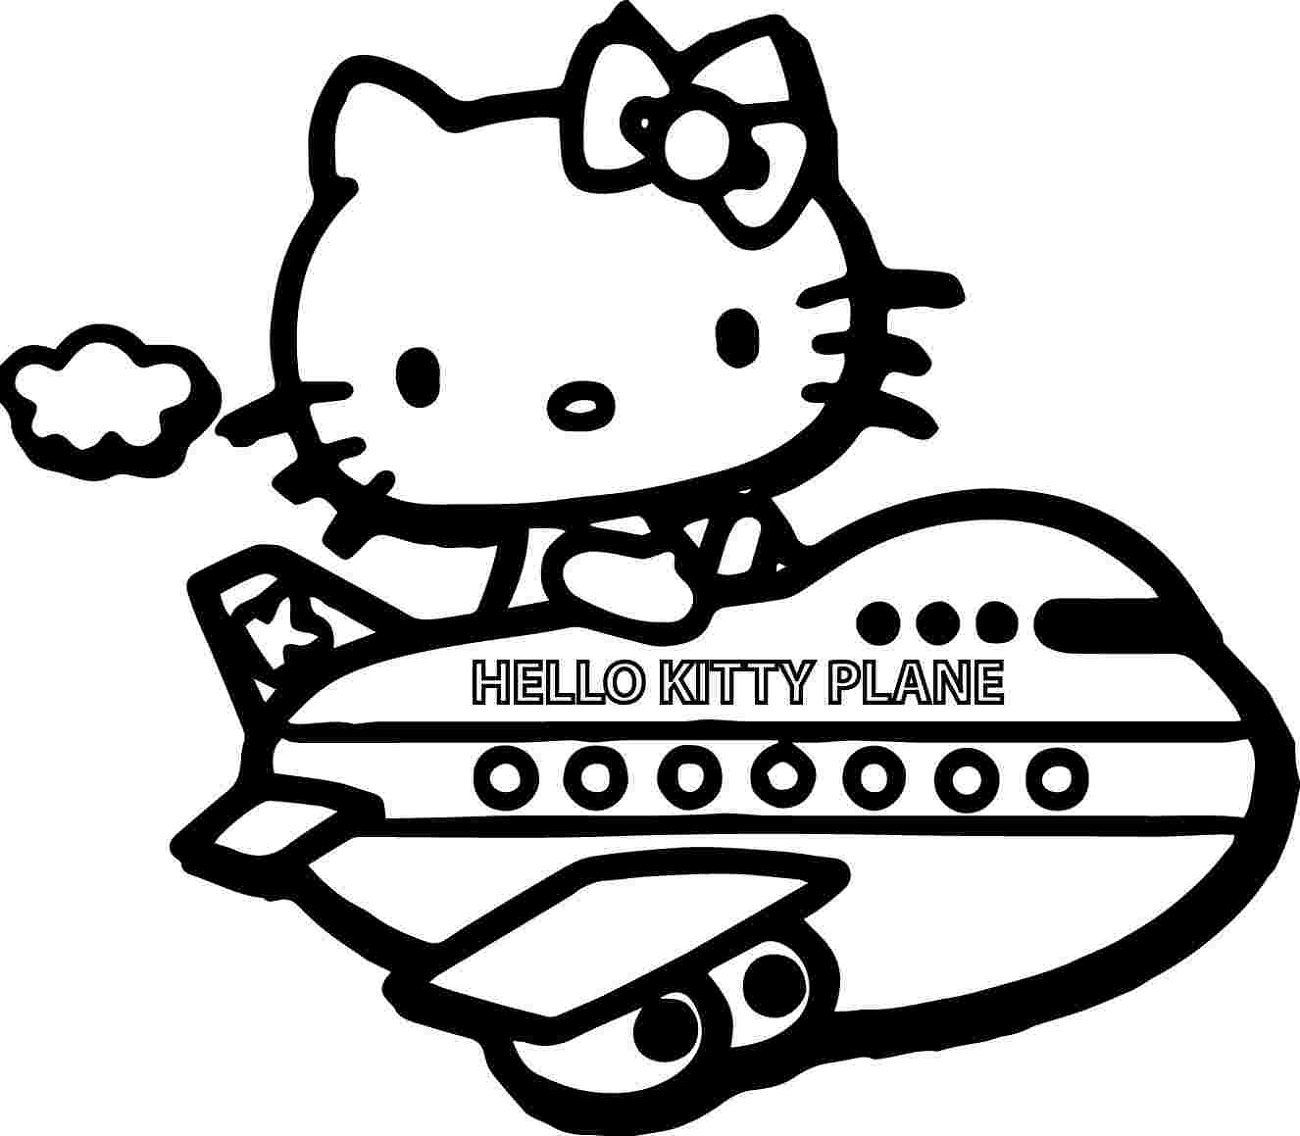 hello kitty airplane color page